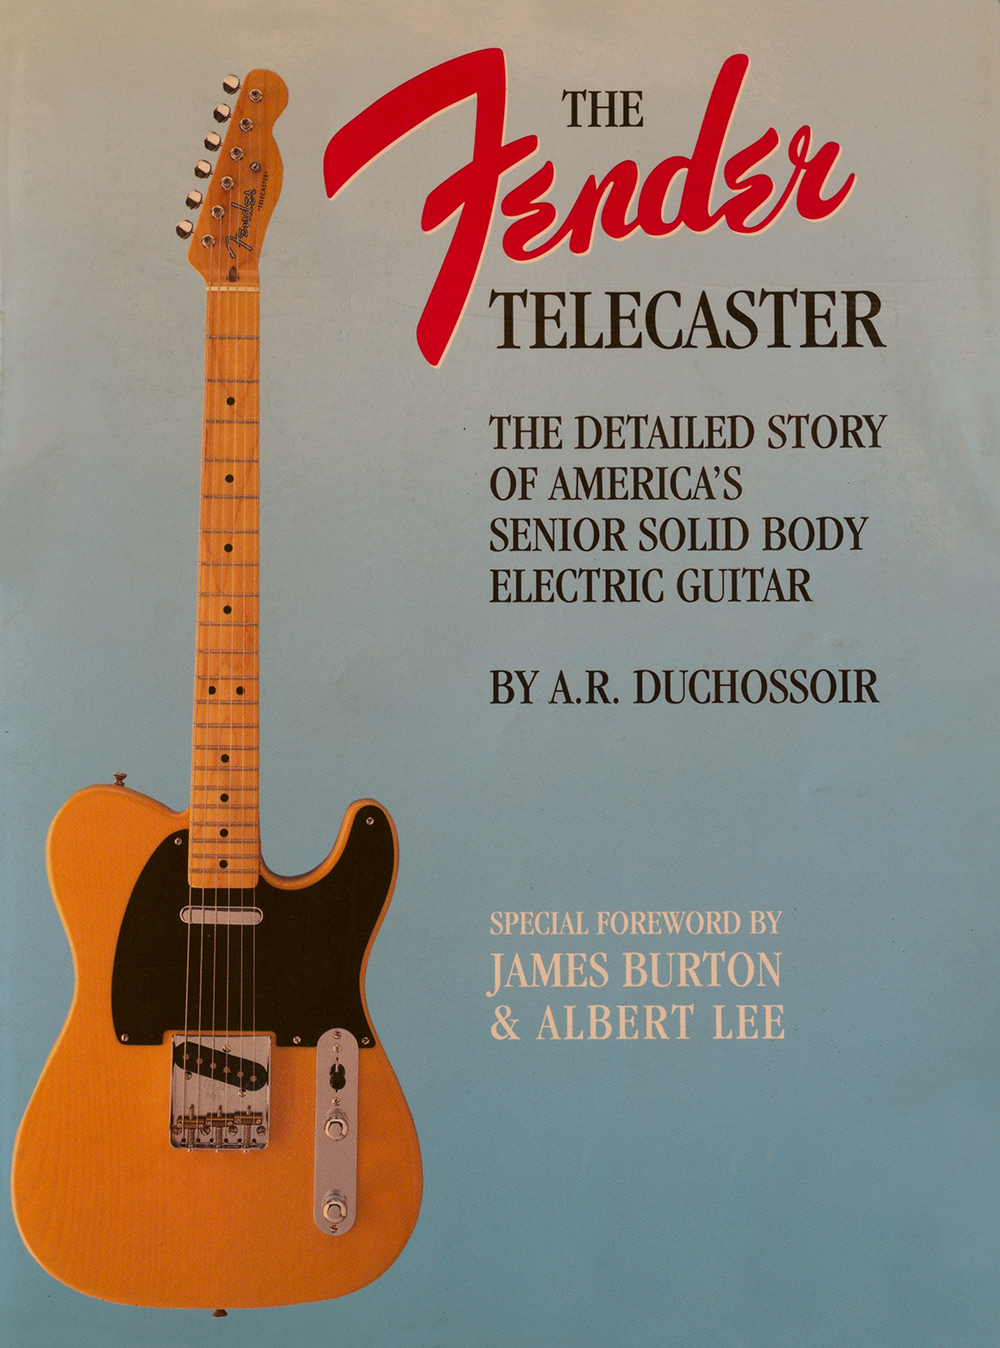 fender telecaster, by andre duchossoir